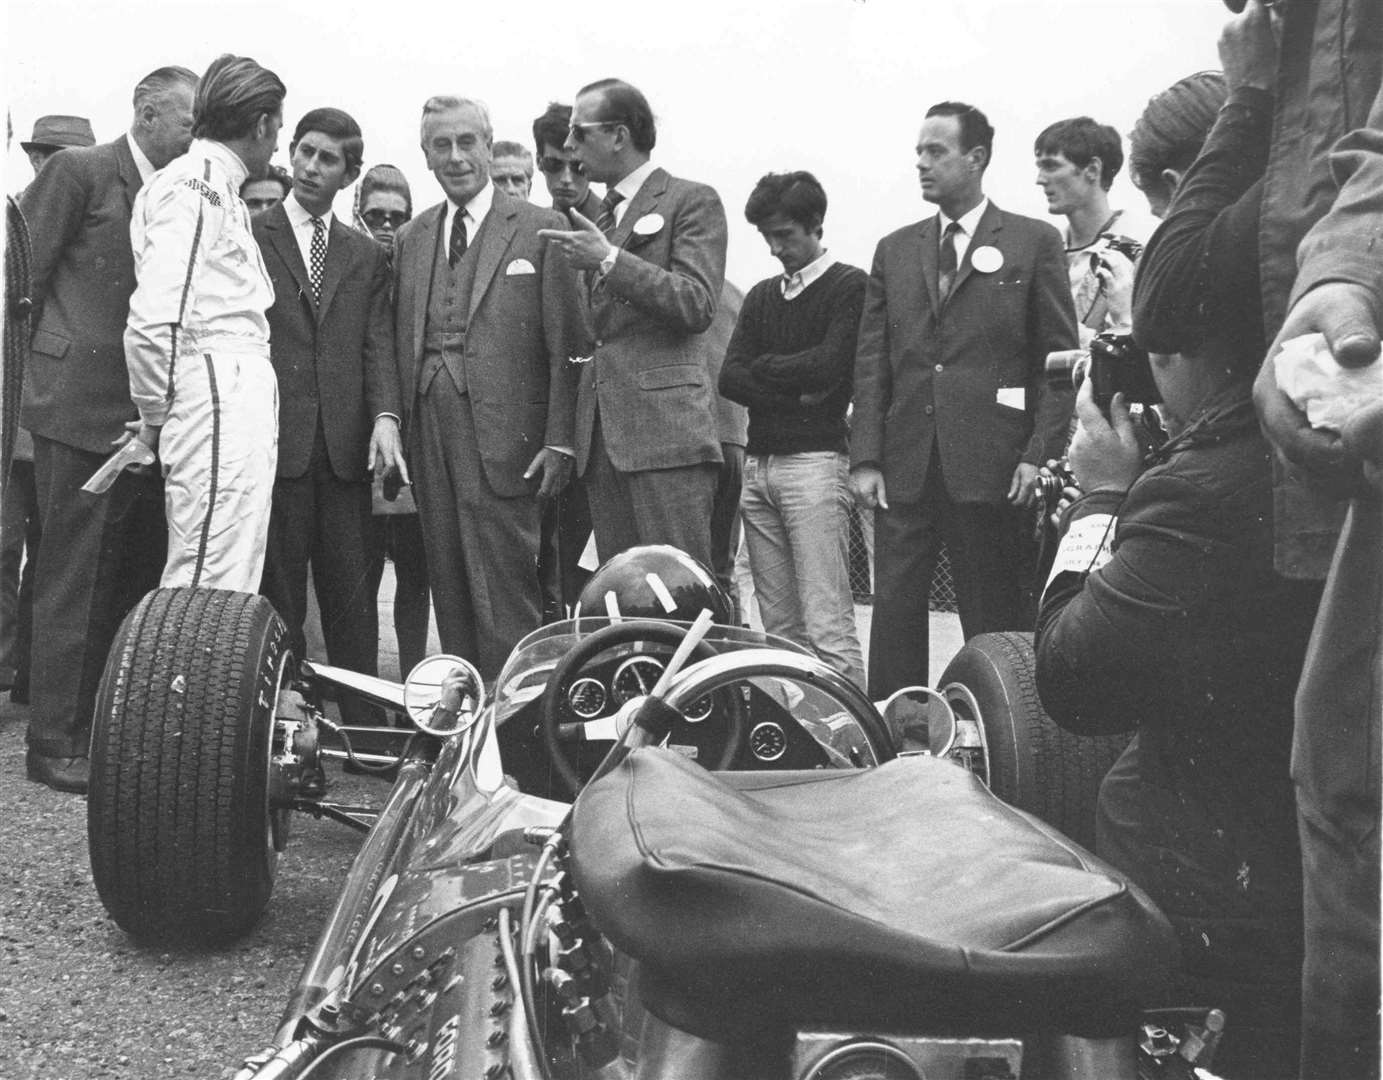 July 1968: Prince Charles drove to Brands Hatch in his blue MGC GT car, where he went to the paddock and met some of the top Grand Prix stars including John Surtees, Graham Hill - pictured here - and Denny Hulme